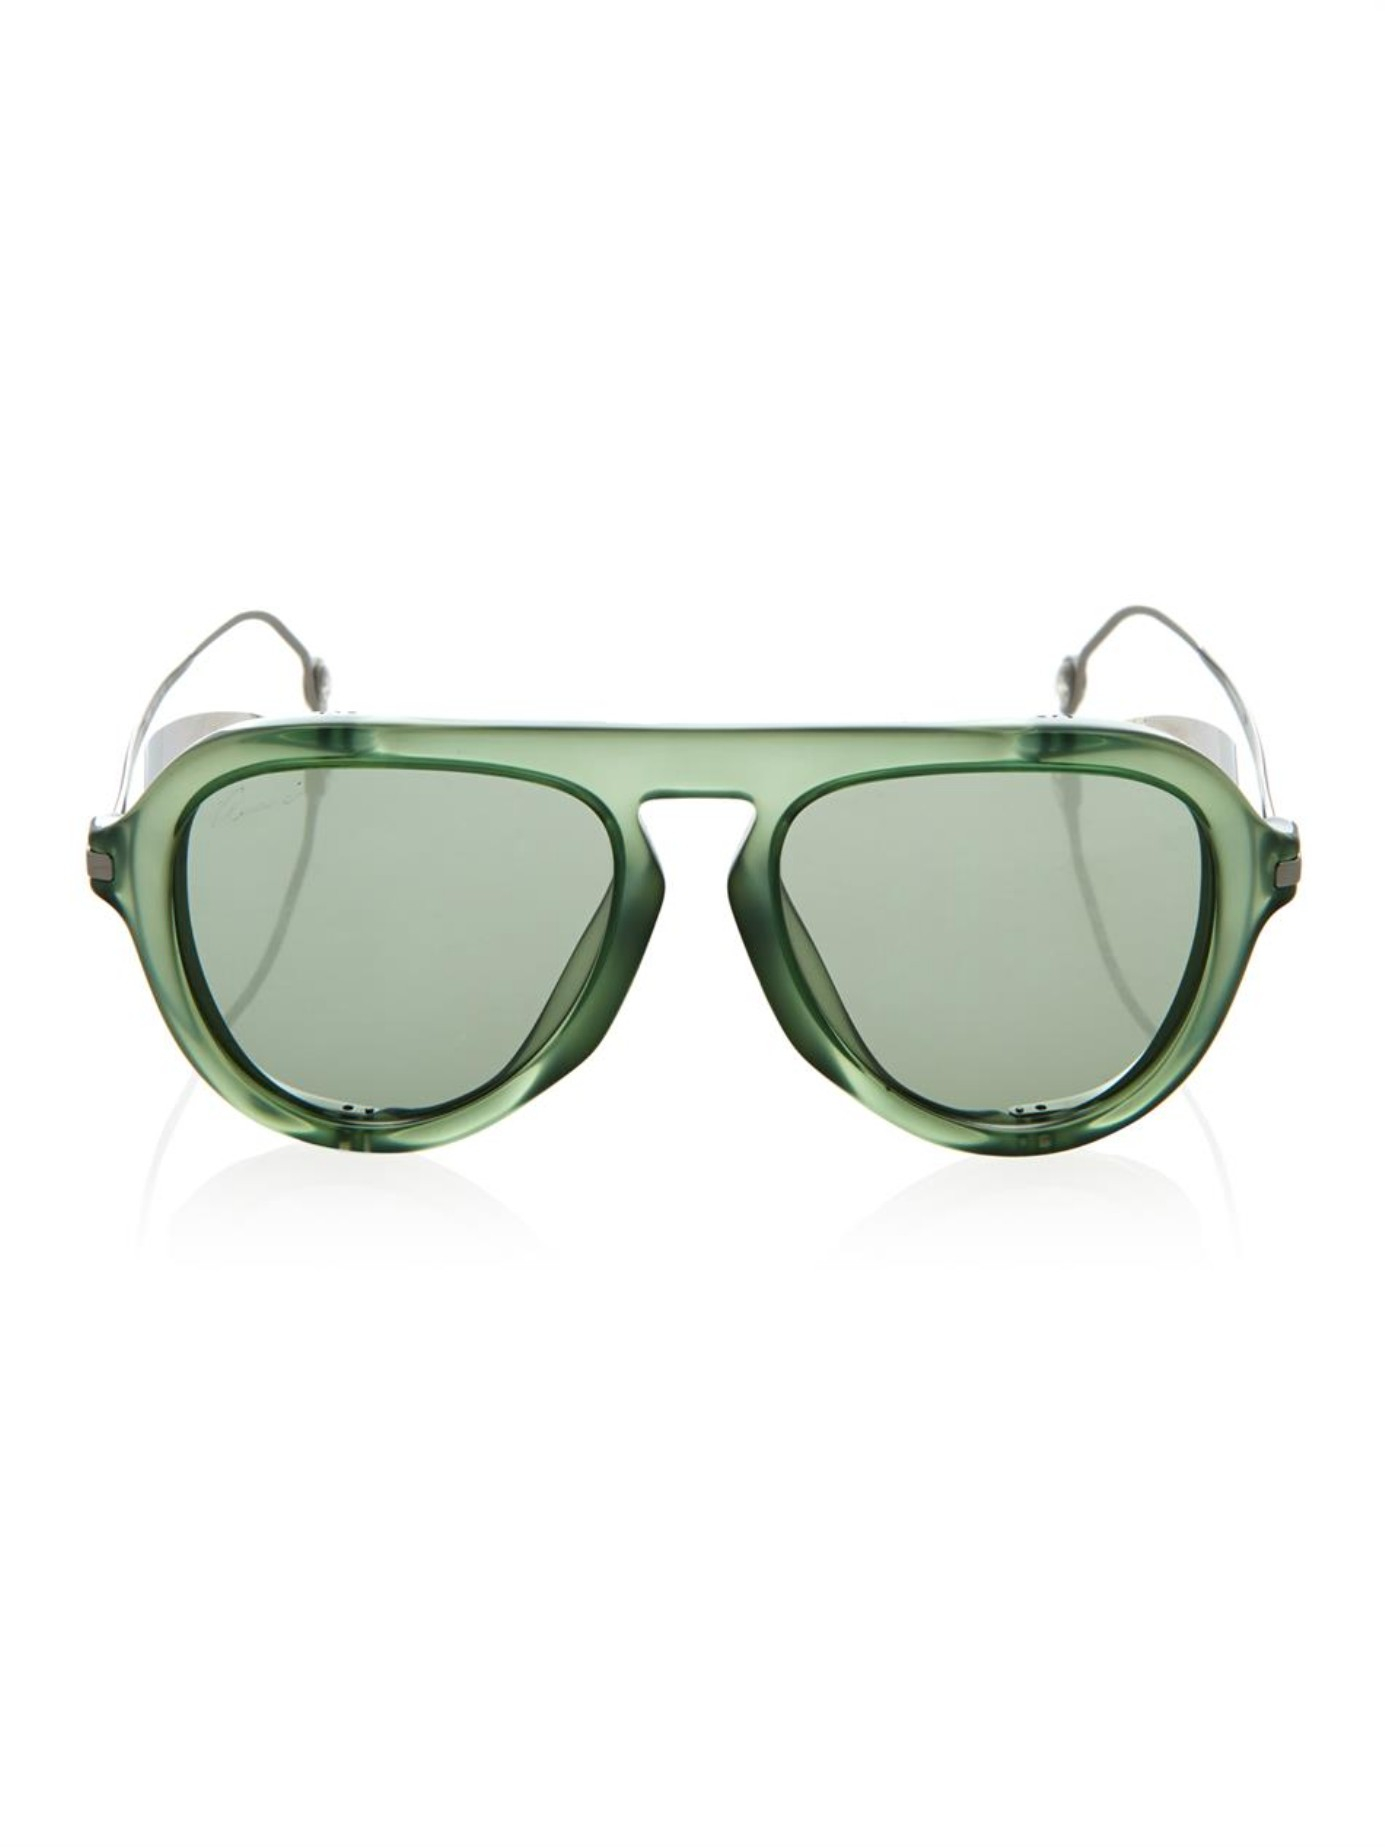 Gucci Sunglasses Green  gucci metal blinker aviator style sunglasses in green lyst